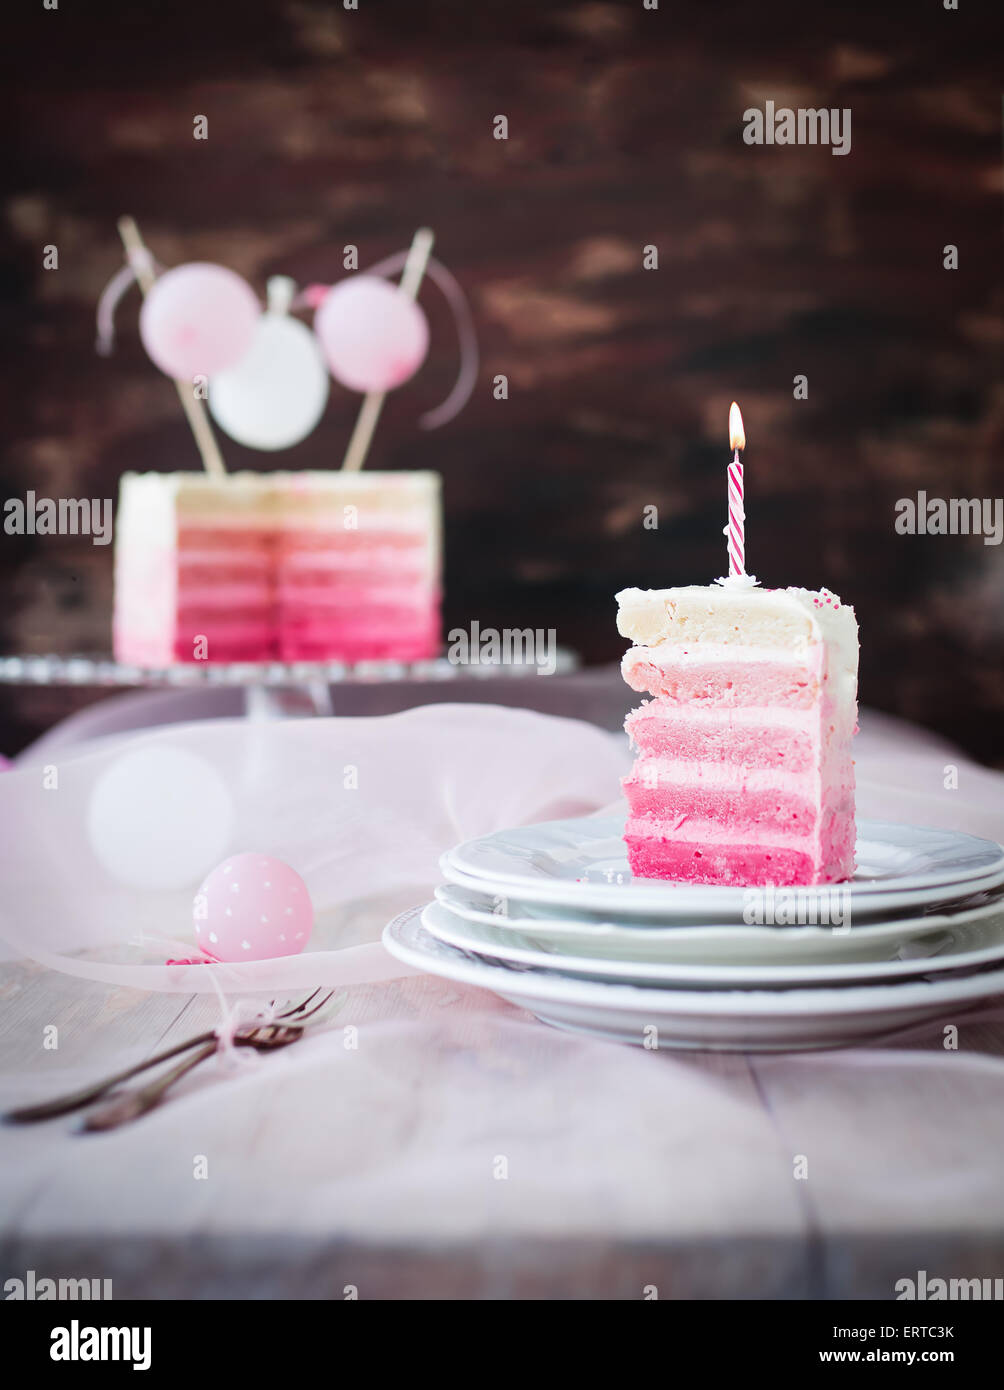 Piece of birthday cake in pink and white. with birthday candle on it. - Stock Image